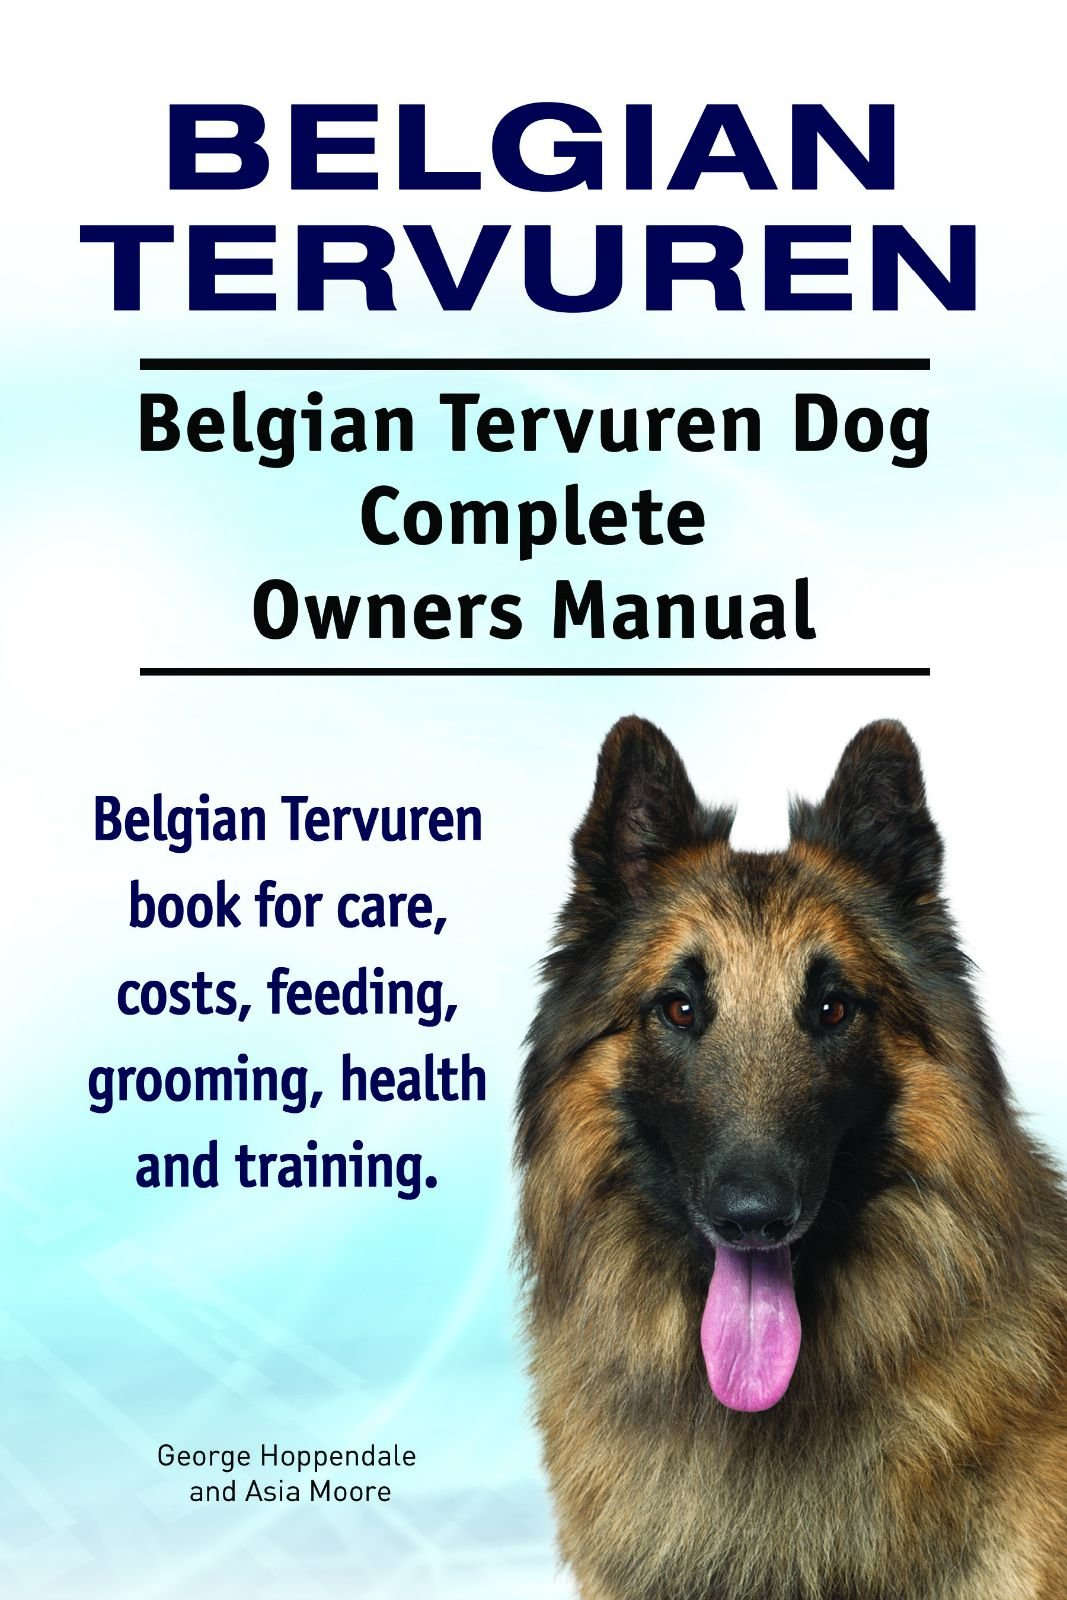 Belgian Tervuren Dog. Belgian Tervuren dog book for costs, care, feeding, grooming, training and health. Belgian…